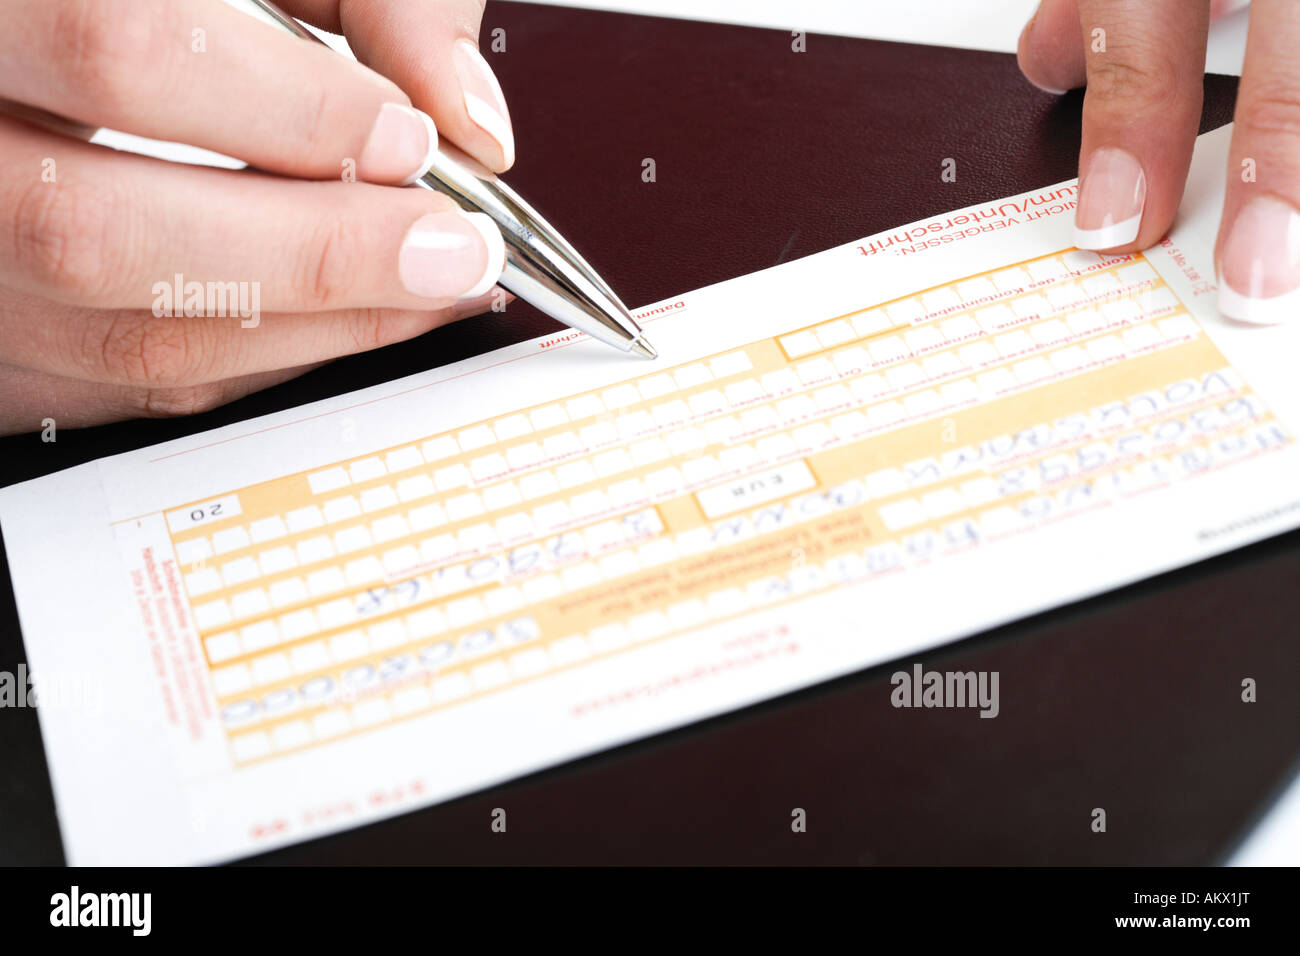 person filling in a money transfer form stock image